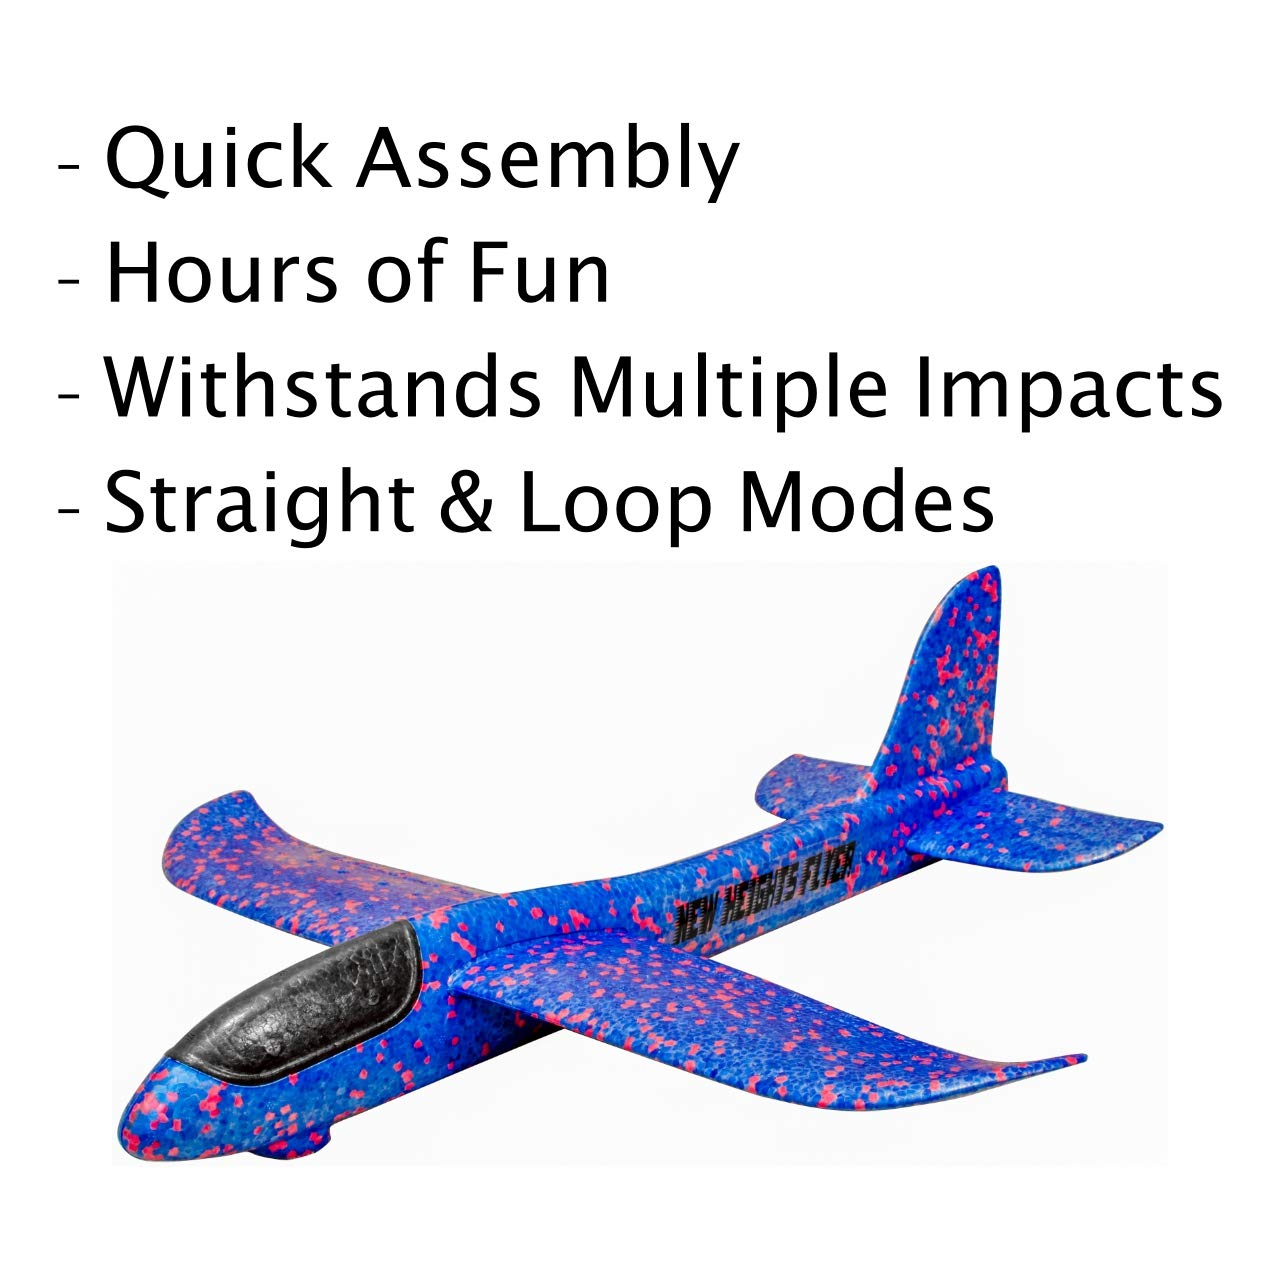 New Heights Flyer Hand Launch Glider Foam Toy Airplane 19 Inch Wingspan 3 Pack (Blue) by New Heights Flyer (Image #2)